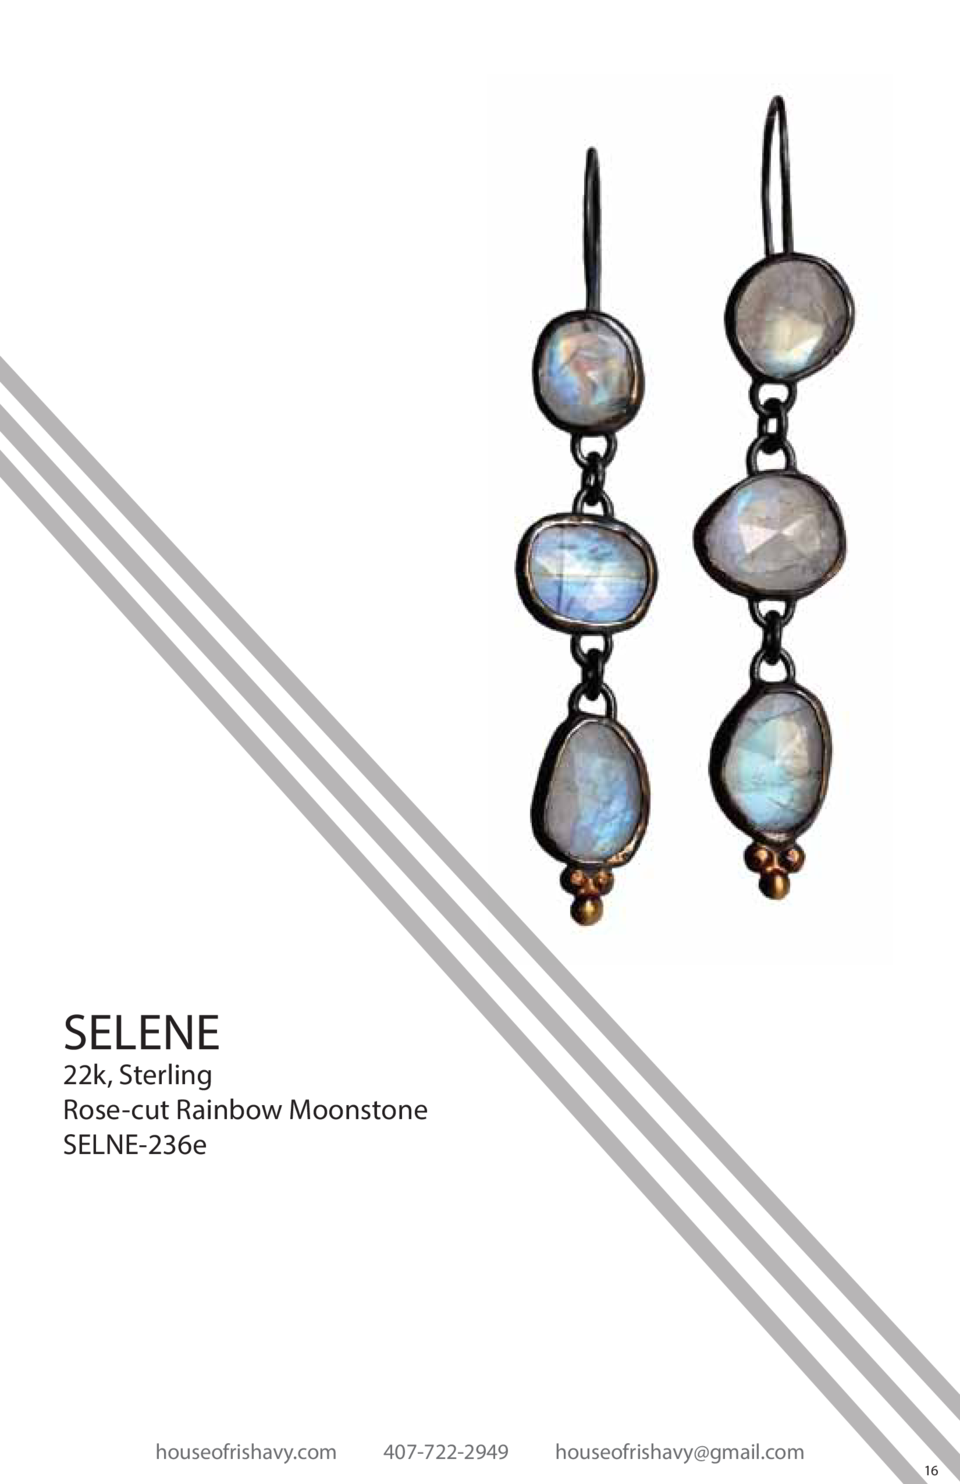 SELENE  22k, Sterling Rose-cut Rainbow Moonstone SELNE-236e  houseofrishavy.com  407-722-2949  houseofrishavy gmail.com  1...